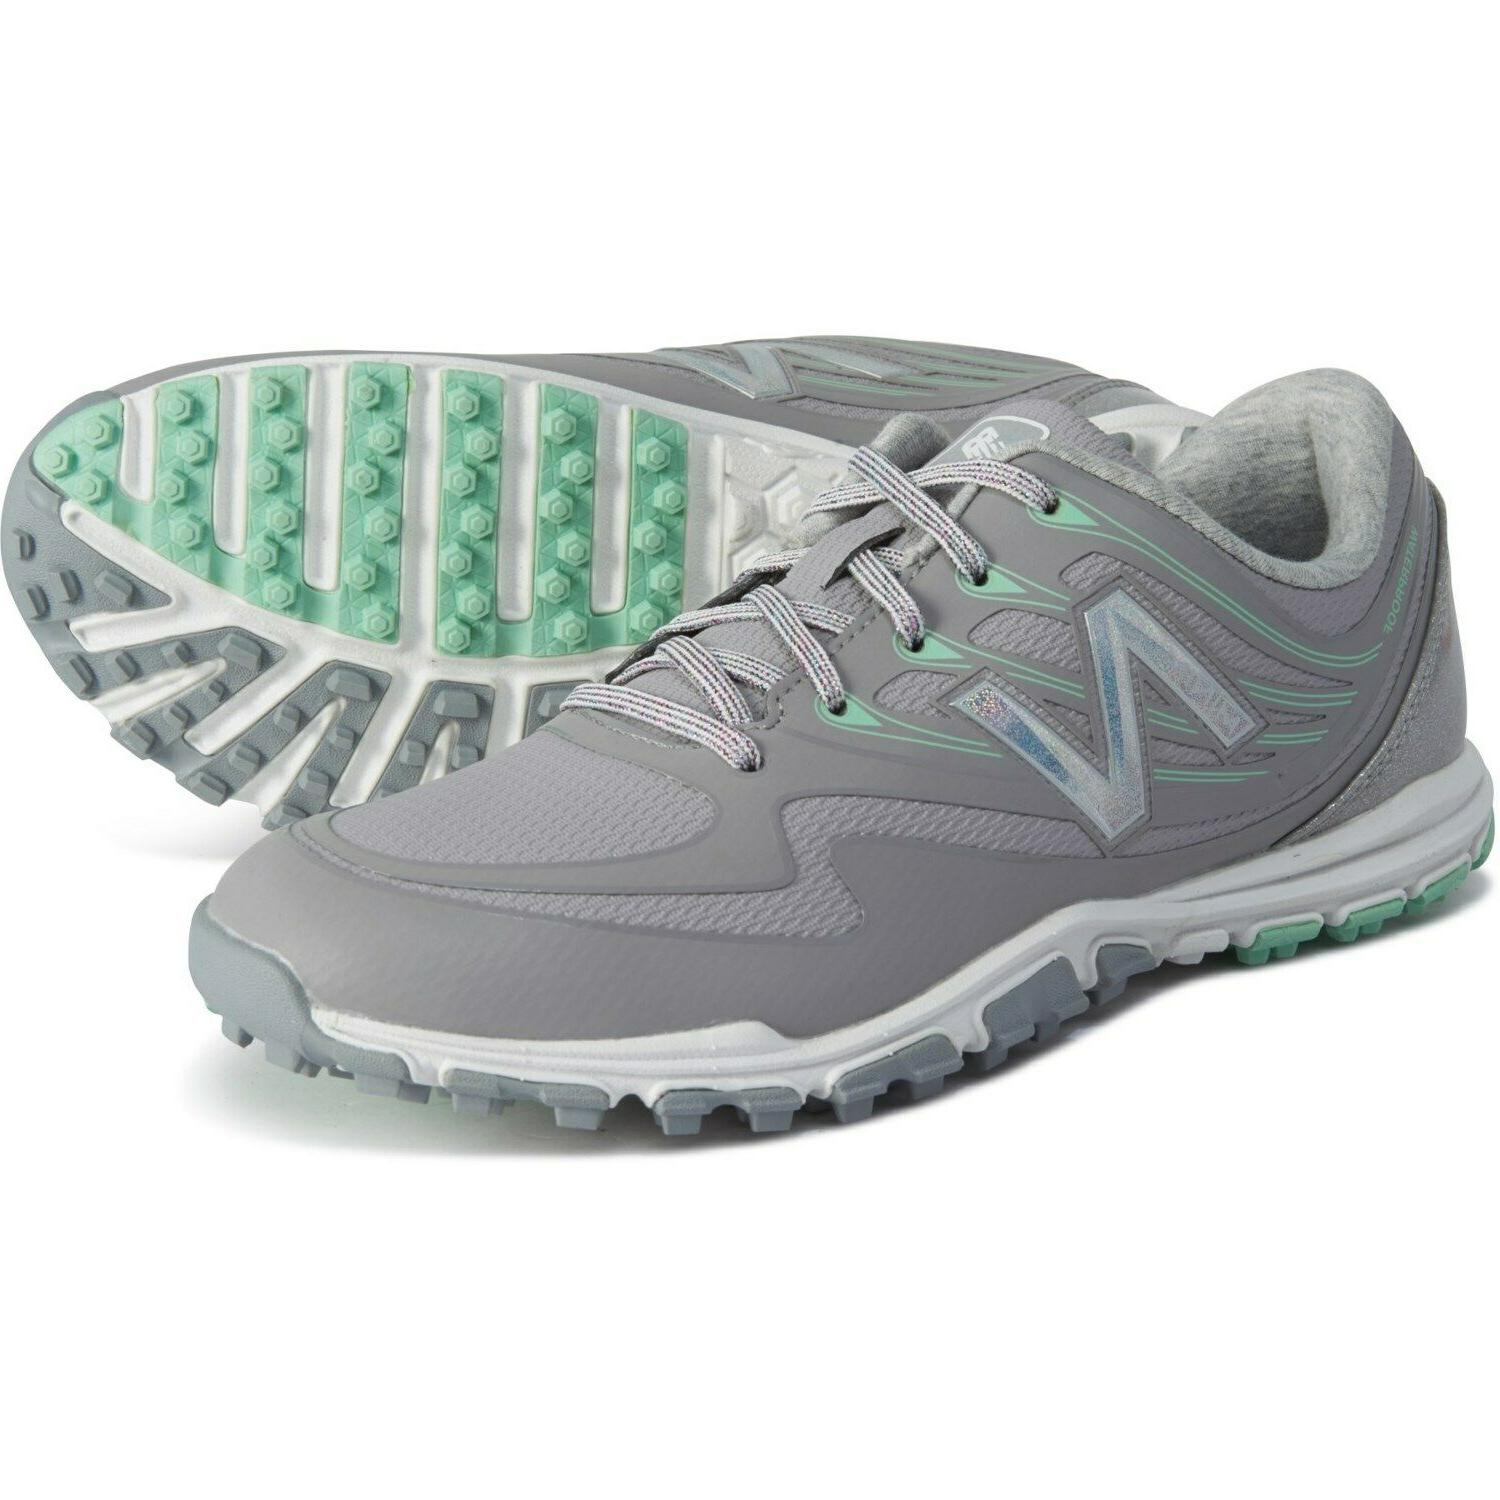 NEW 2018 NEW BALANCE WOMEN MINIMUS WP SPIKELESS GOLF SHOES M